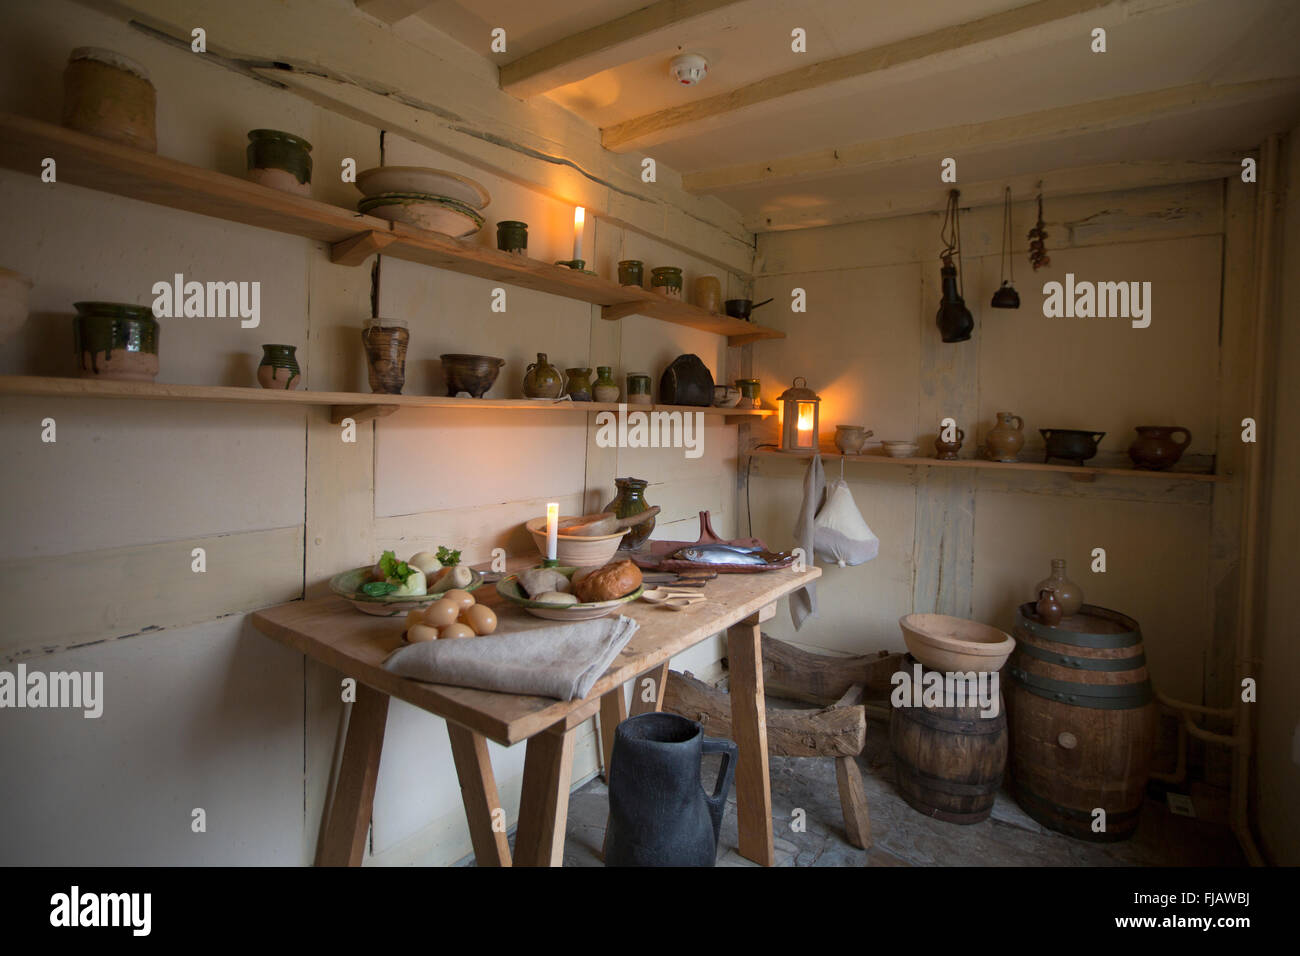 Parlour in Shakespeare's house, Stratford-upon-Avon, England - Stock Image